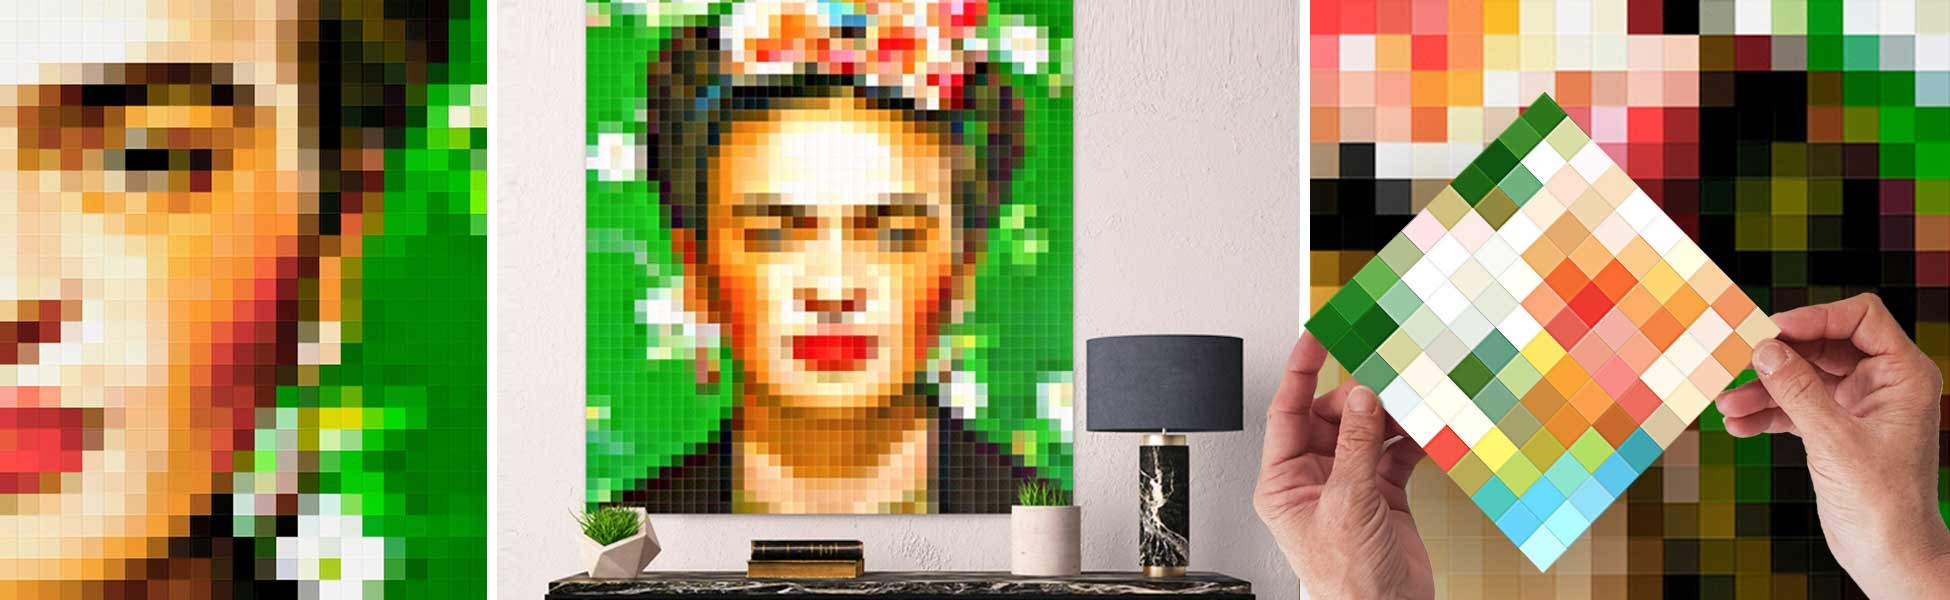 Artworks by Frida Kahlo in pixel art